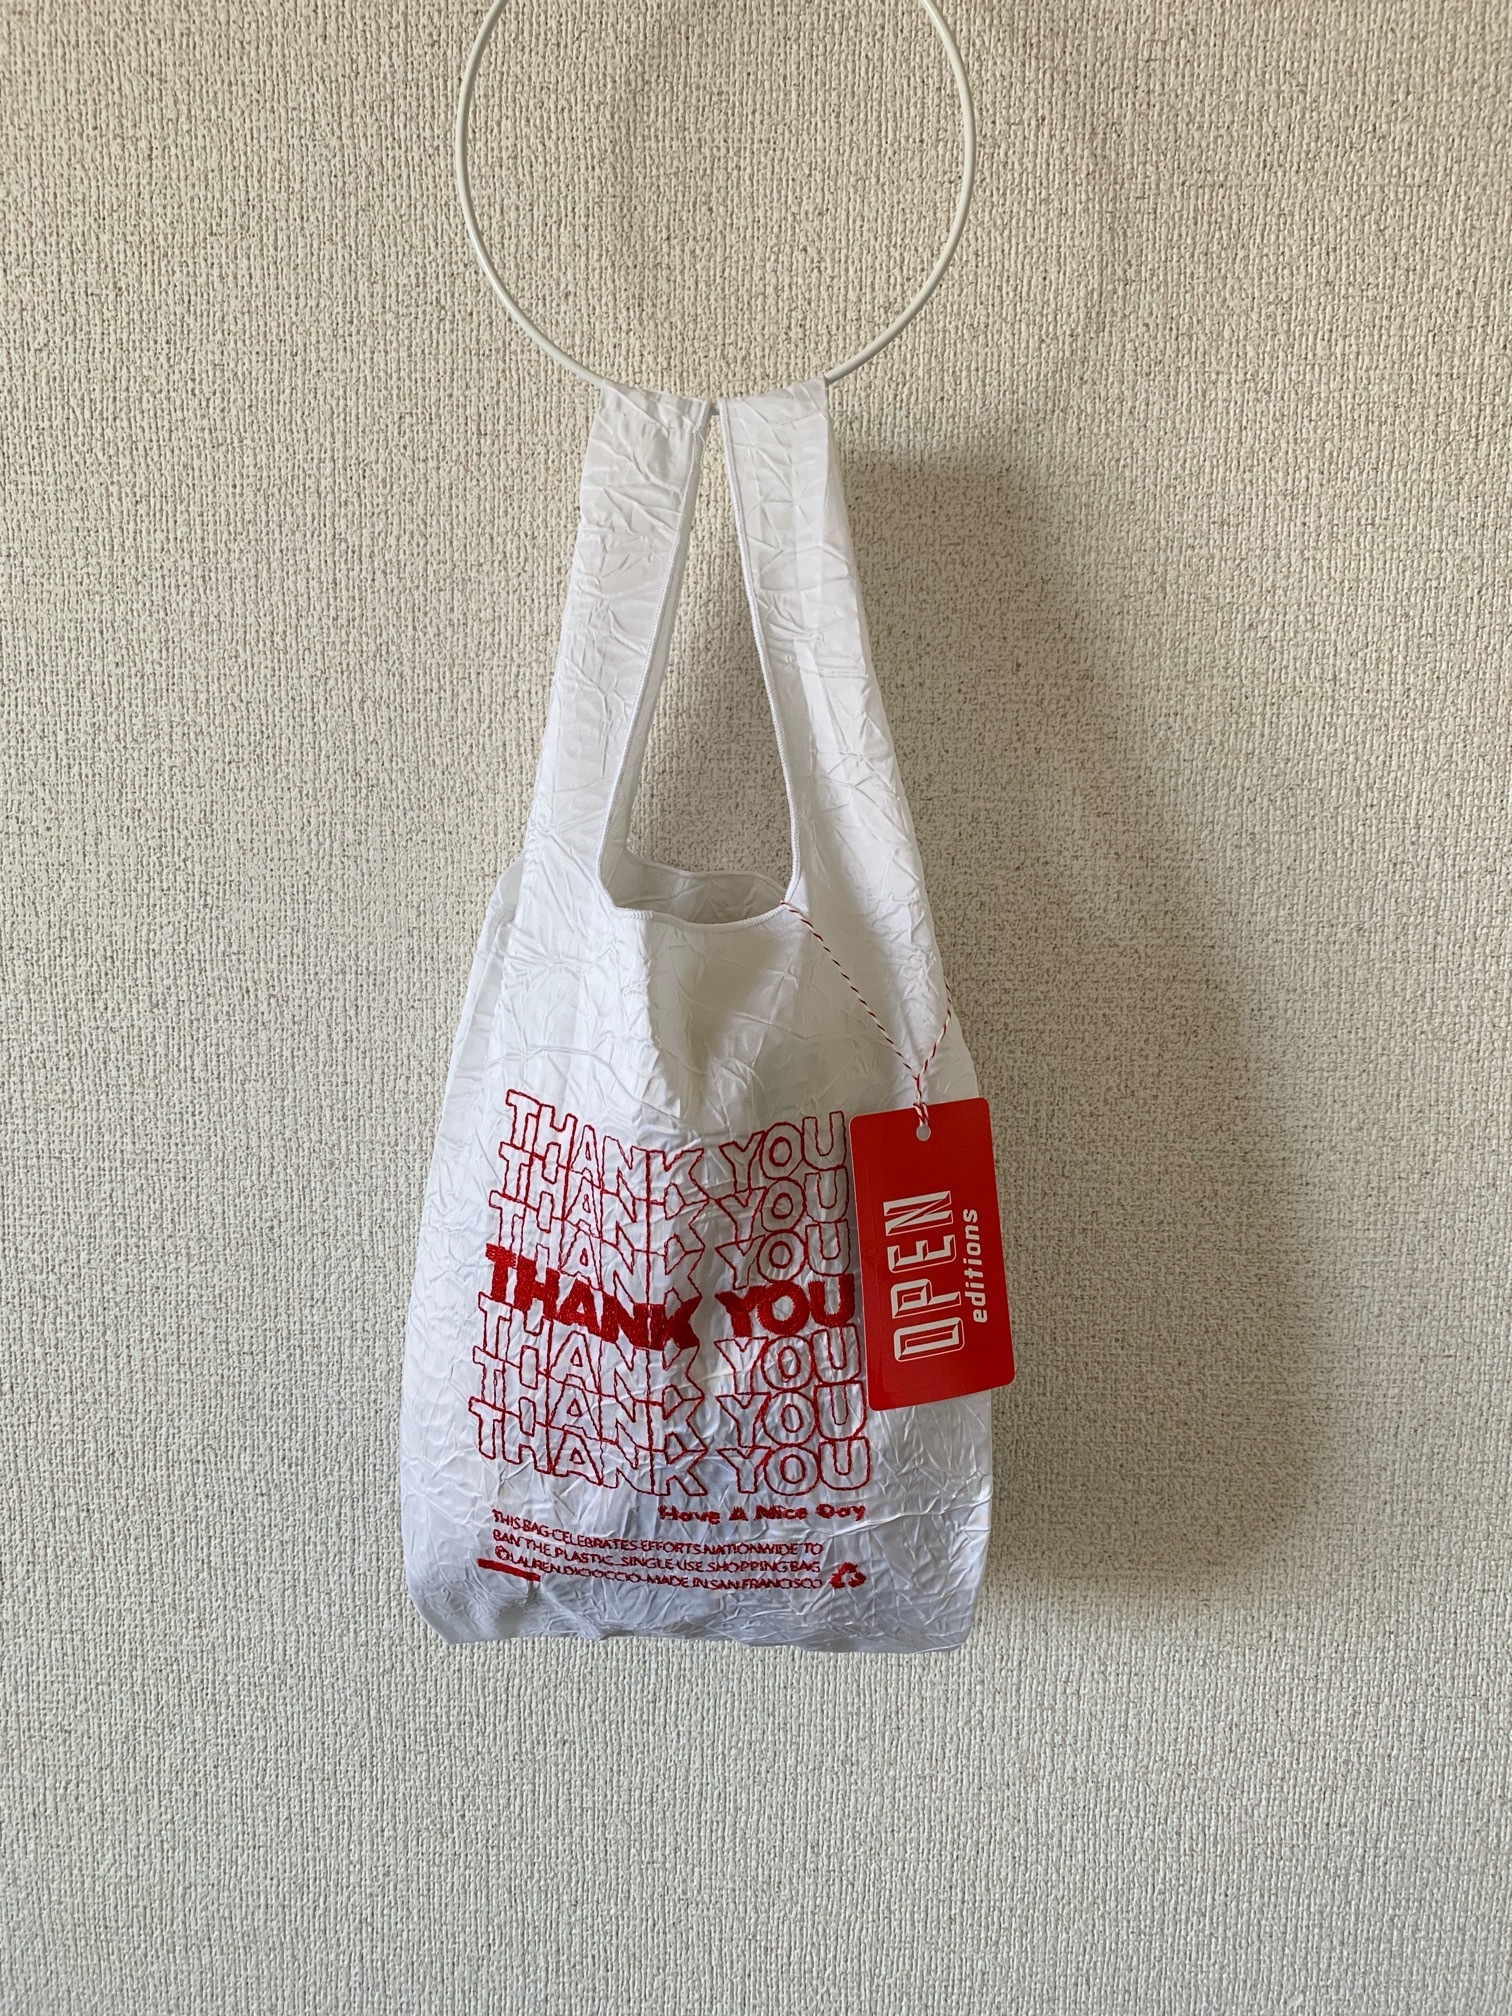 【OPEN EDITIONS】THANK YOU MINI エコバッグ/ THANK YOU Red